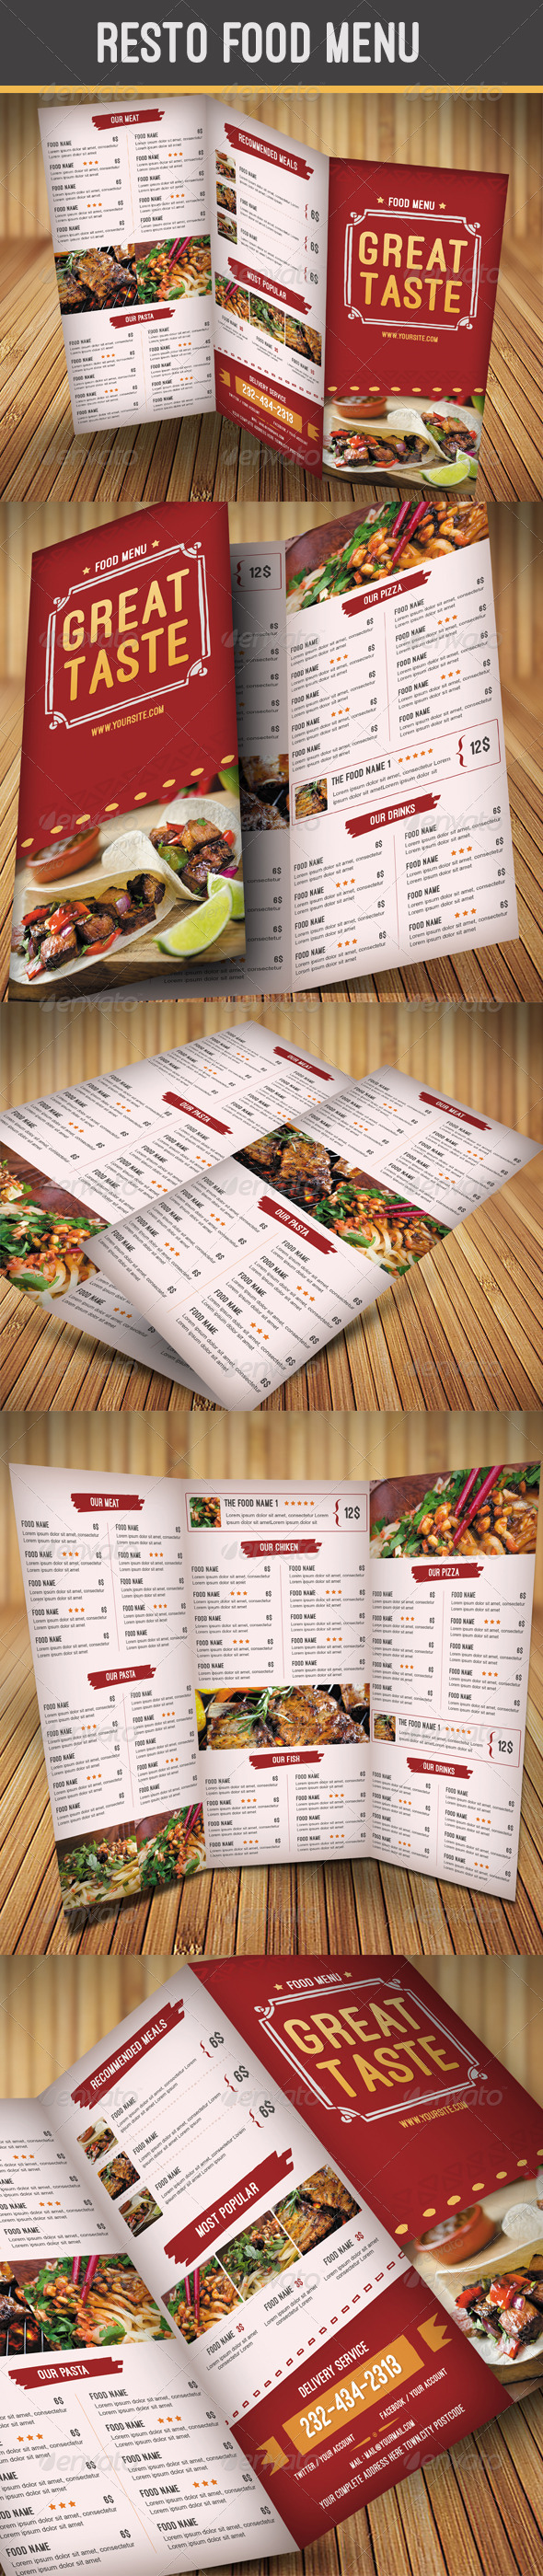 GraphicRiver Resto Food Menu 8319612